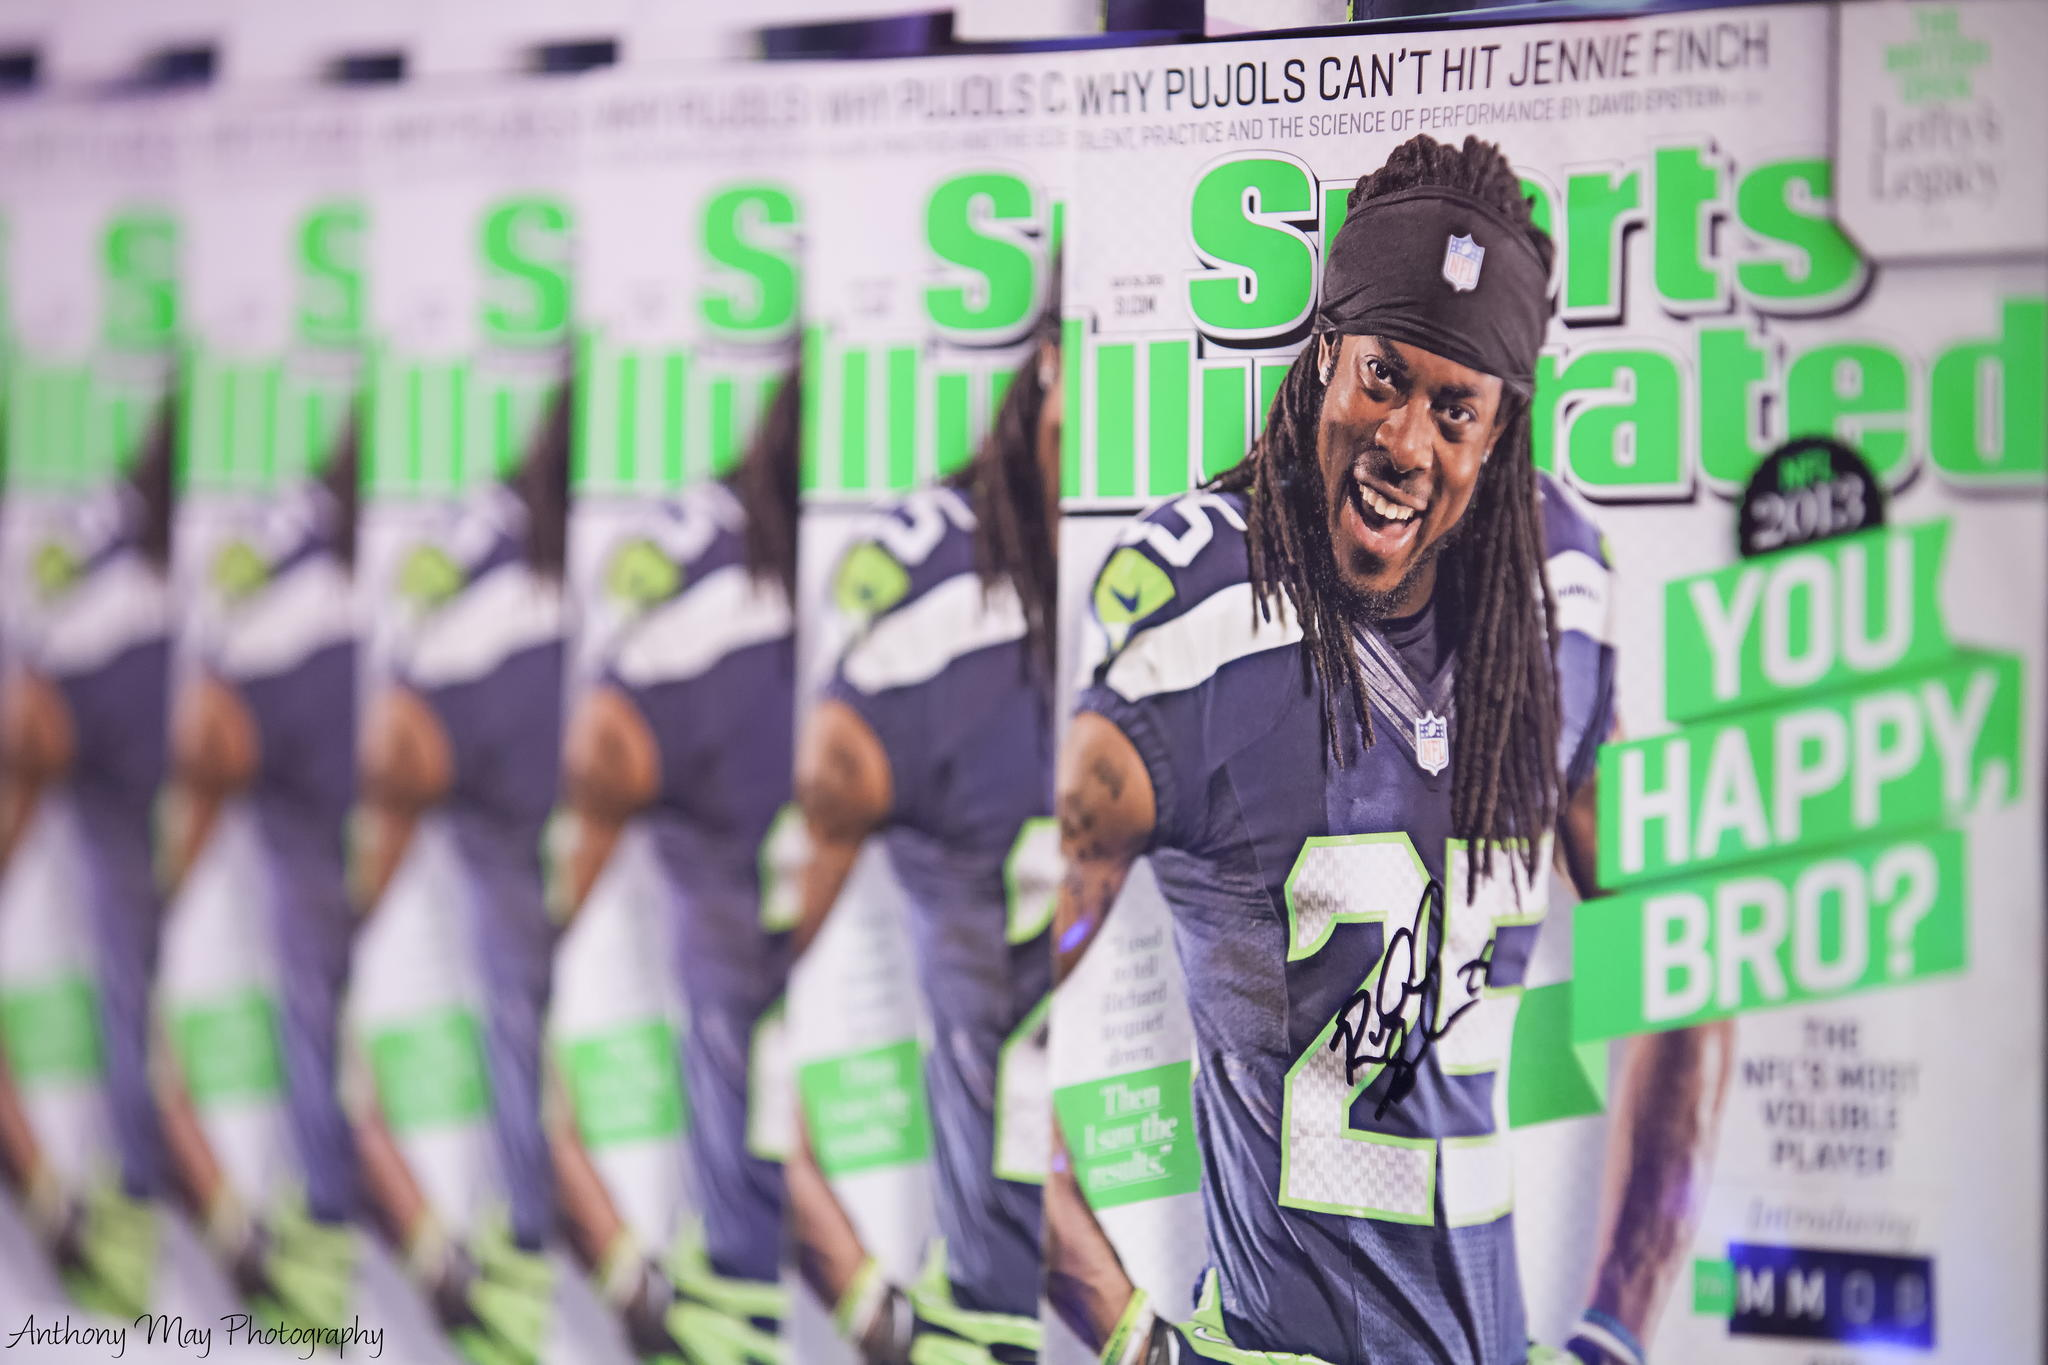 News Roundup: Sports Illustrated Fires All Its Staff Photographers, World's Largest Stop-Motion GIF, and More